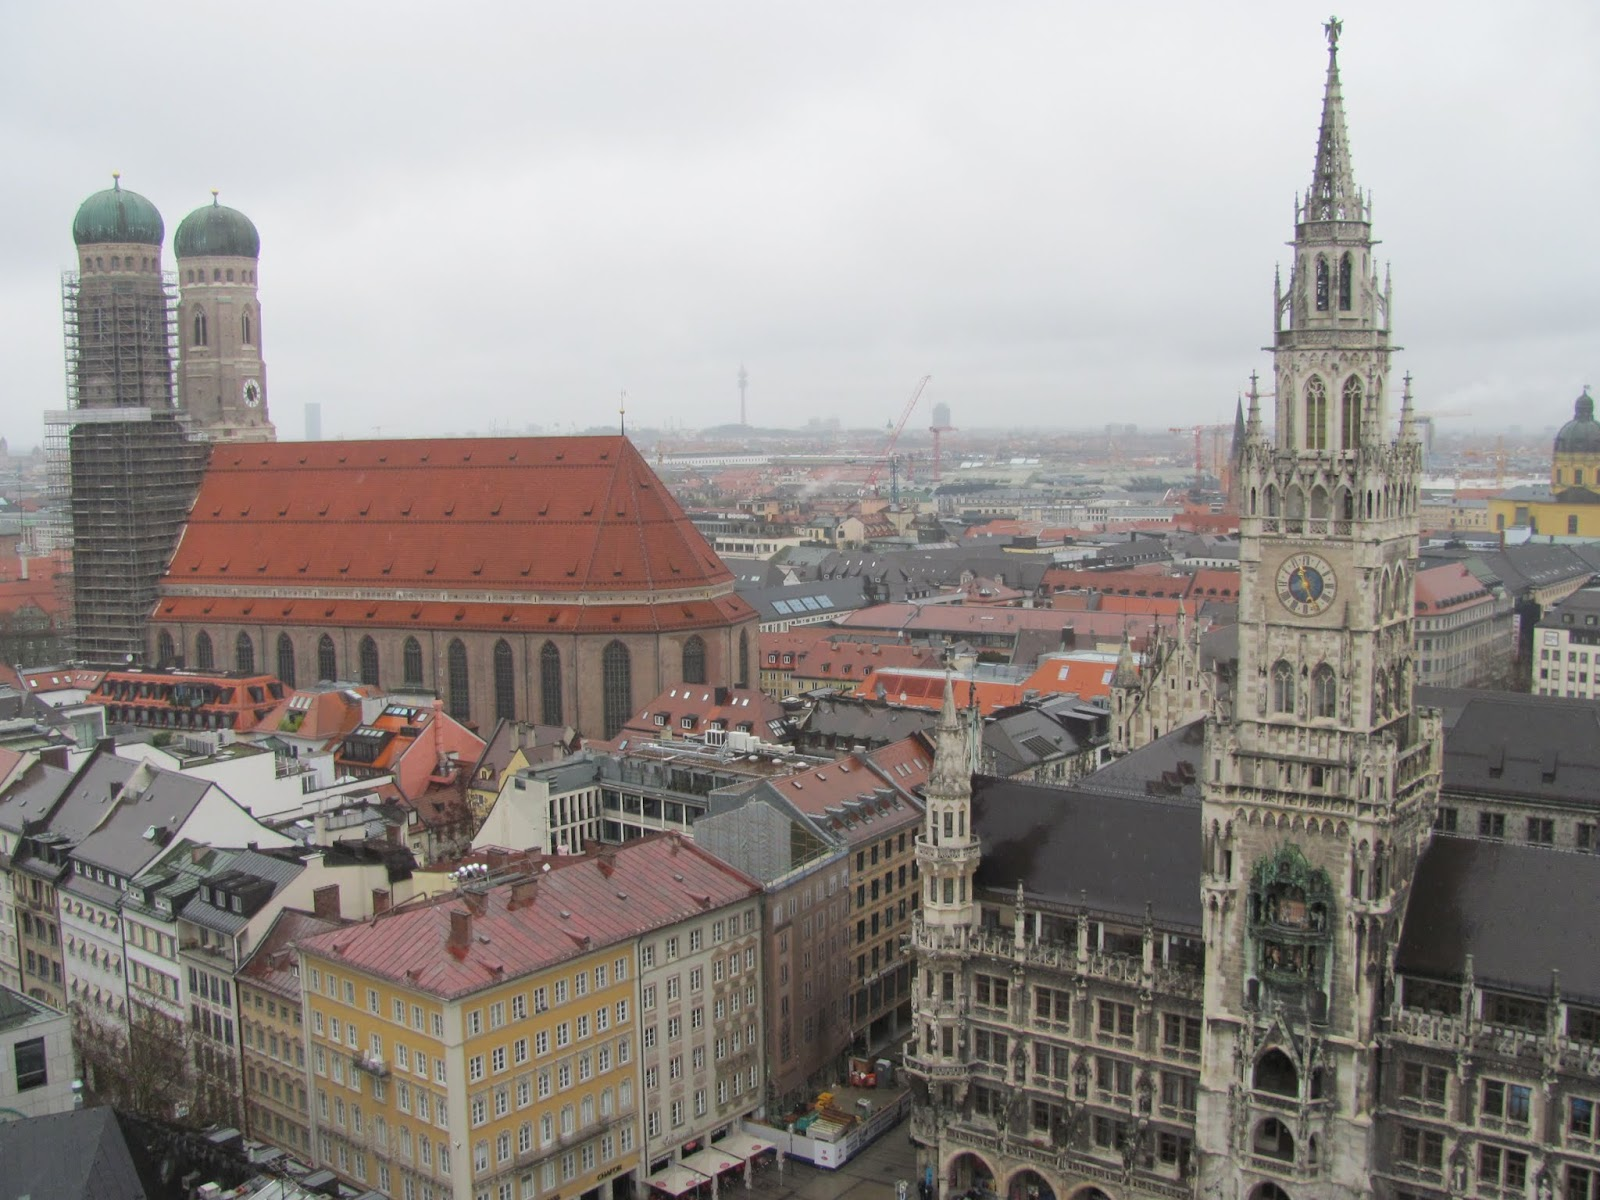 Frauenkirch (left), New Town Hall (right) seen from St. Peter's Church tower Munich, Germany